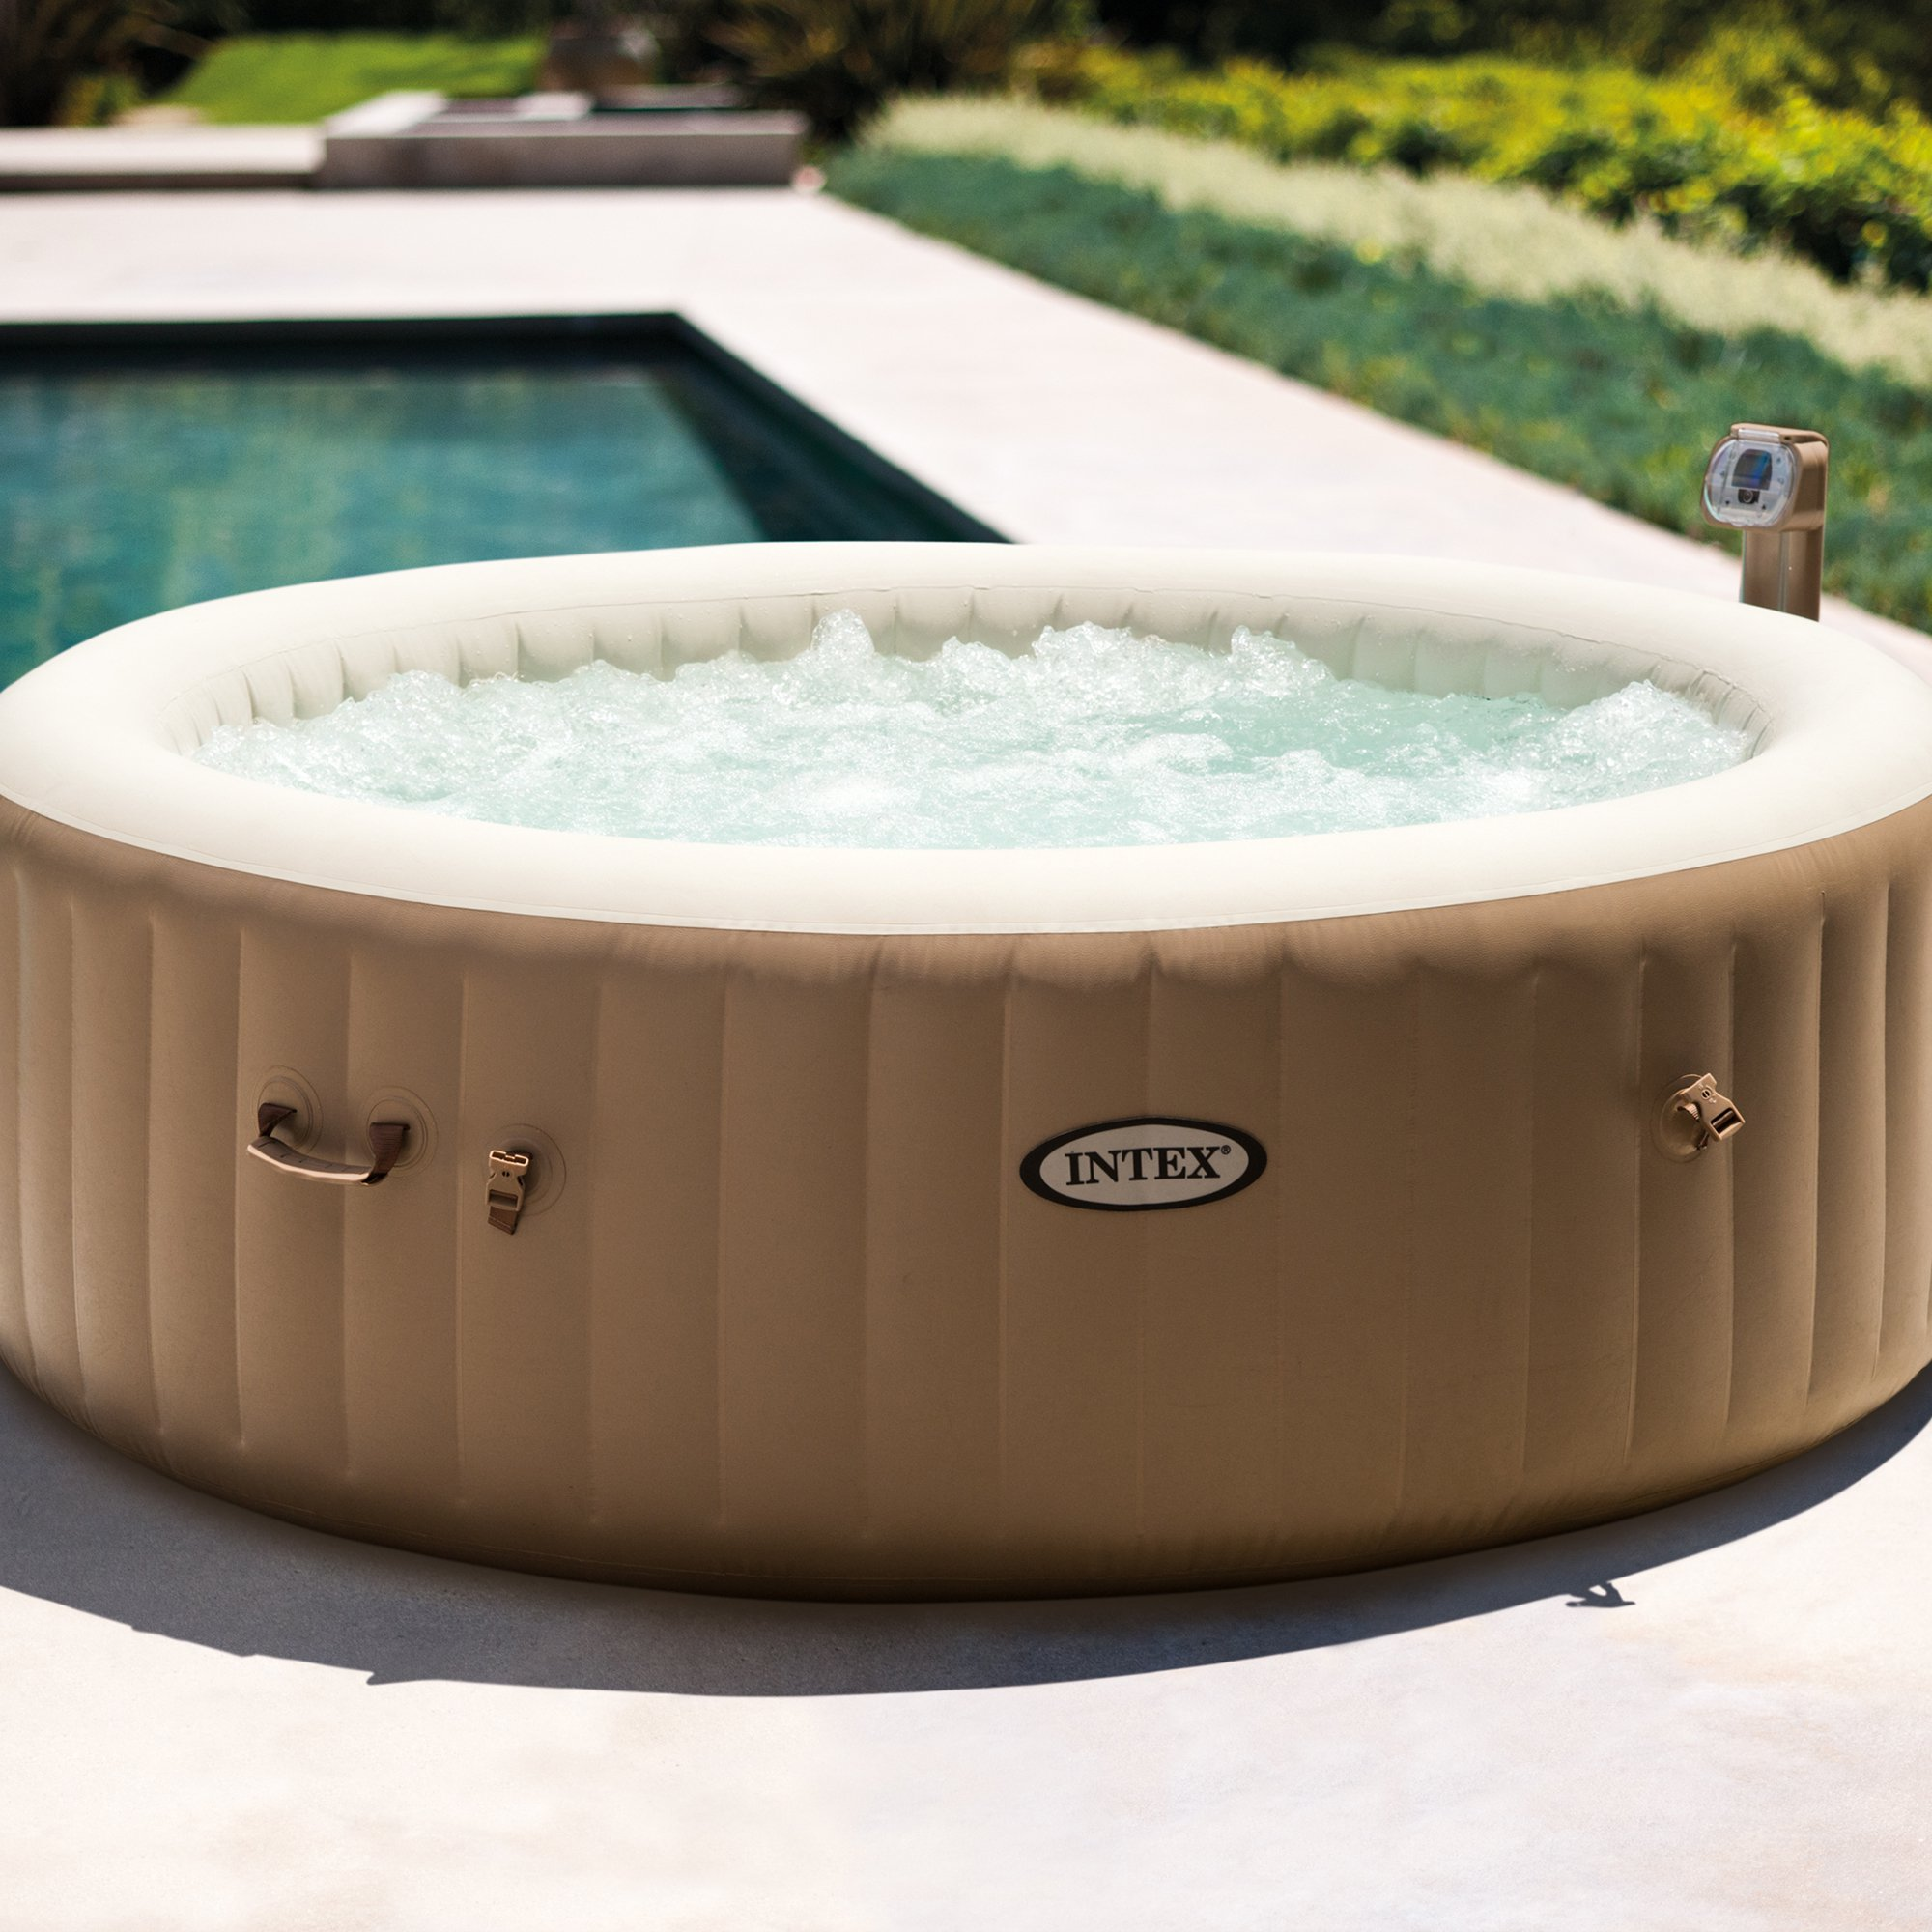 Intex Inflatable Pure Spa 6-Person Portable Heated Bubble Jet Hot ...